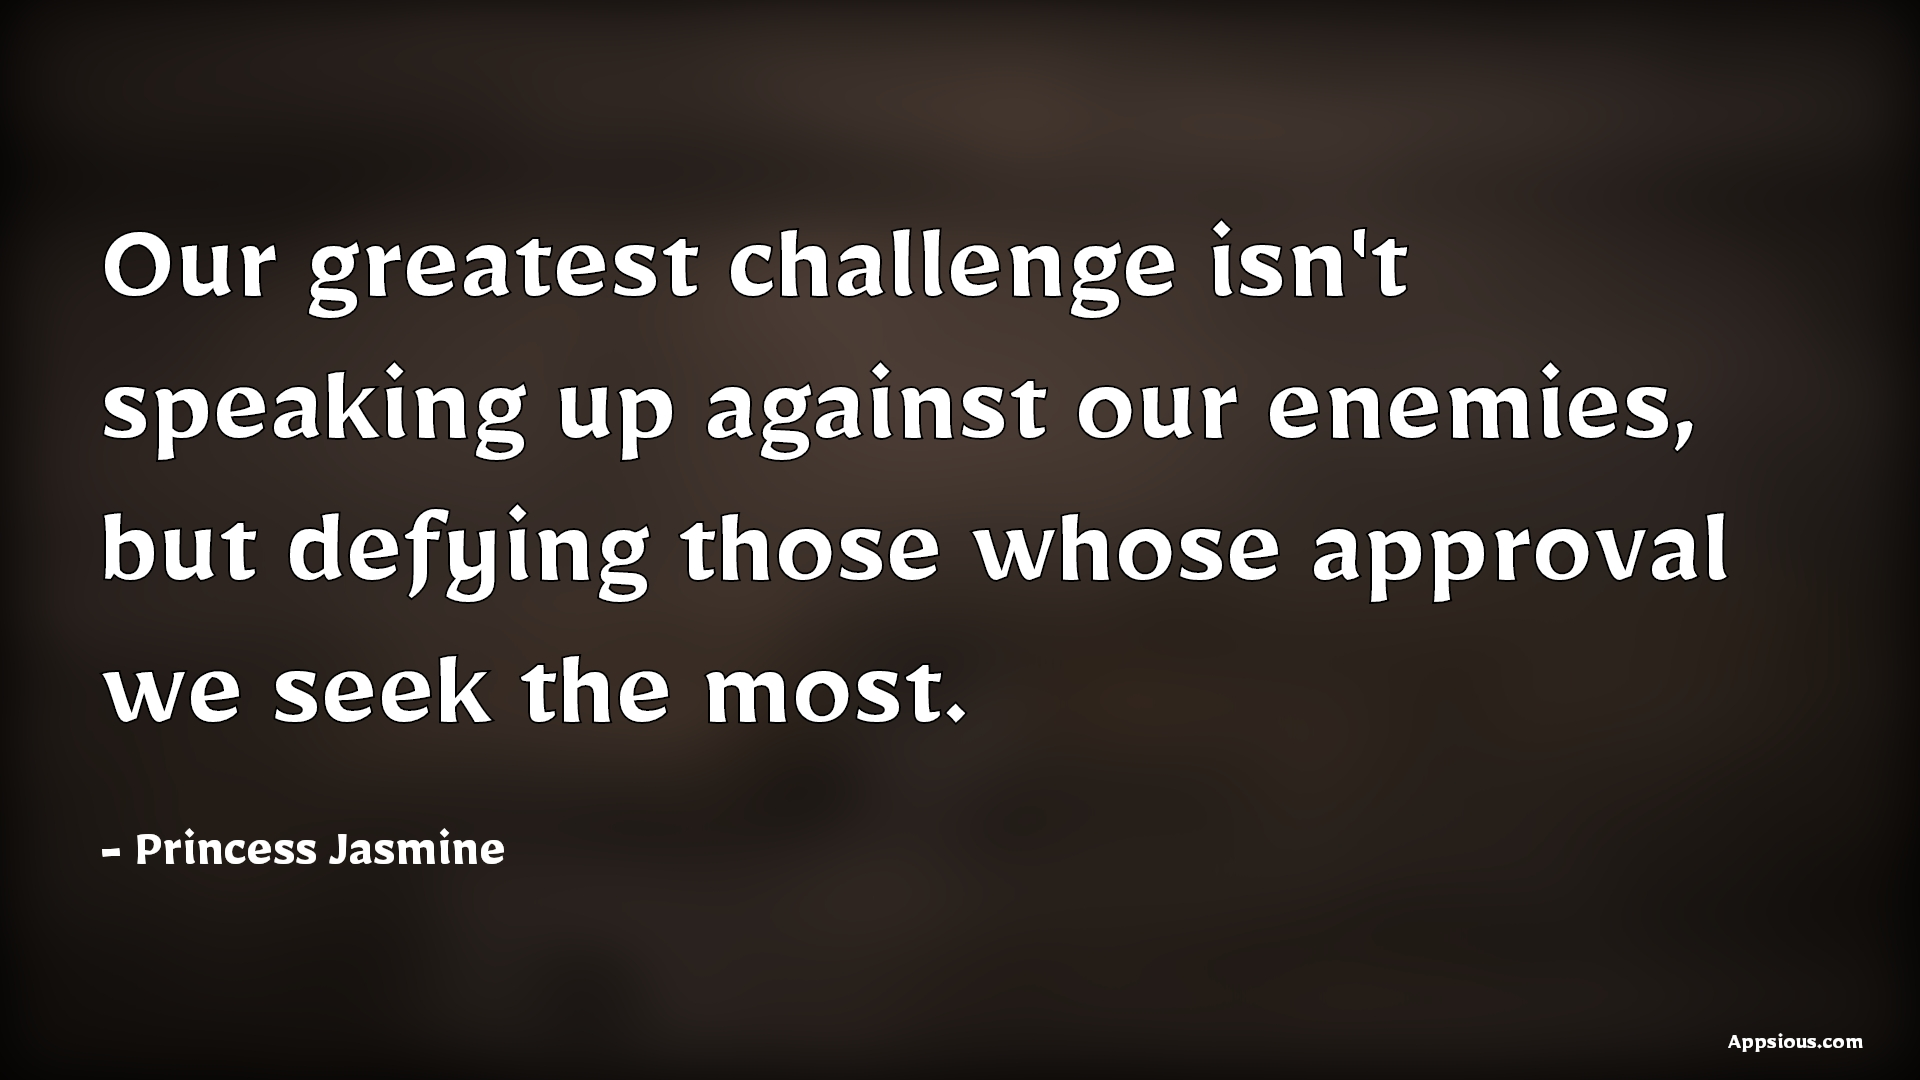 Our greatest challenge isn't speaking up against our enemies, but defying those whose approval we seek the most.